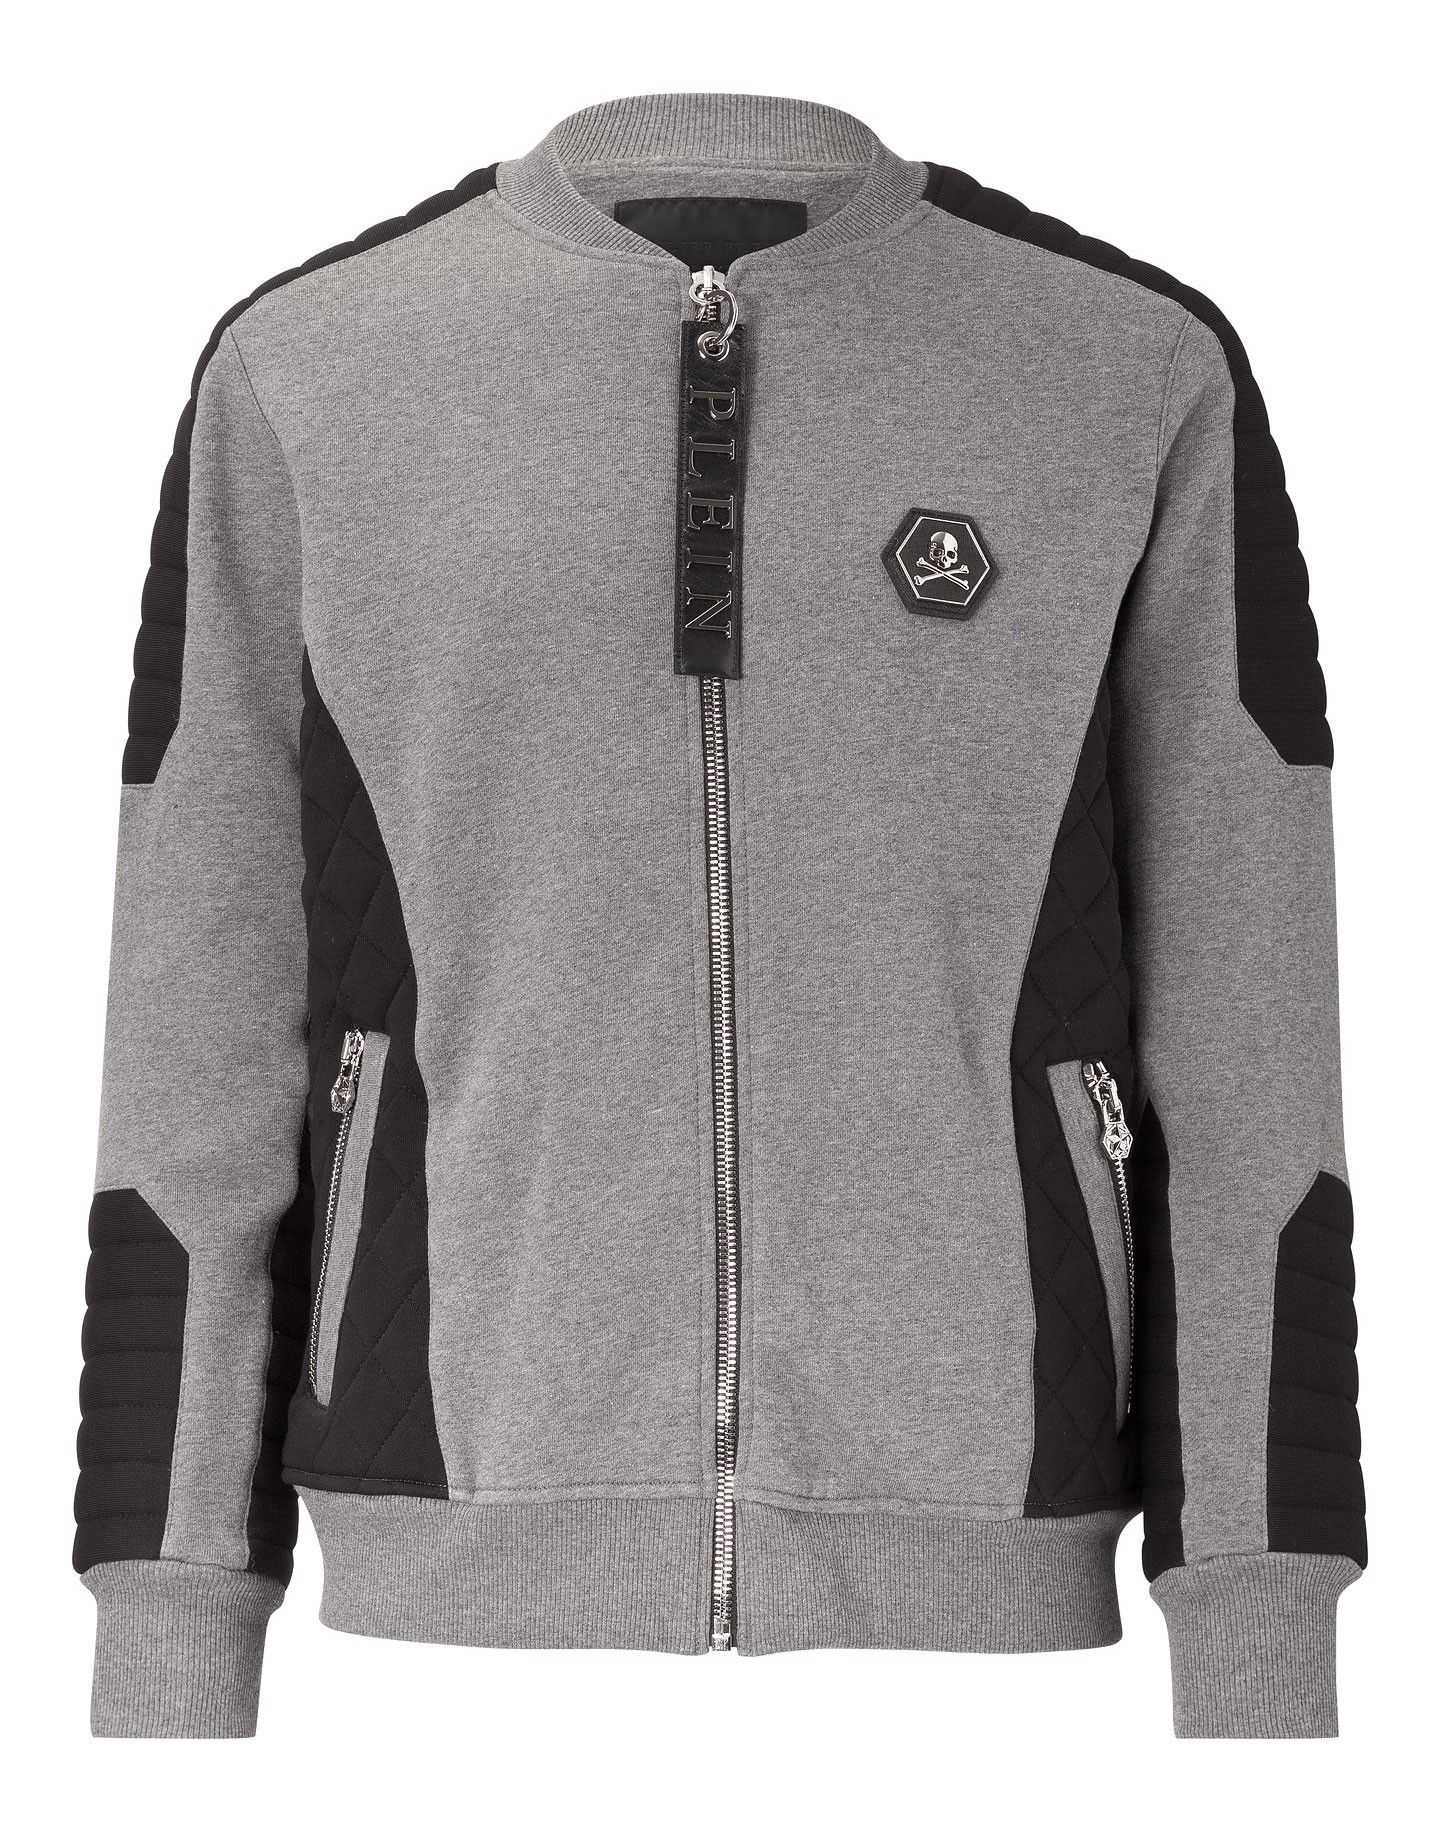 PHILIPP PLEIN SWEAT JACKET